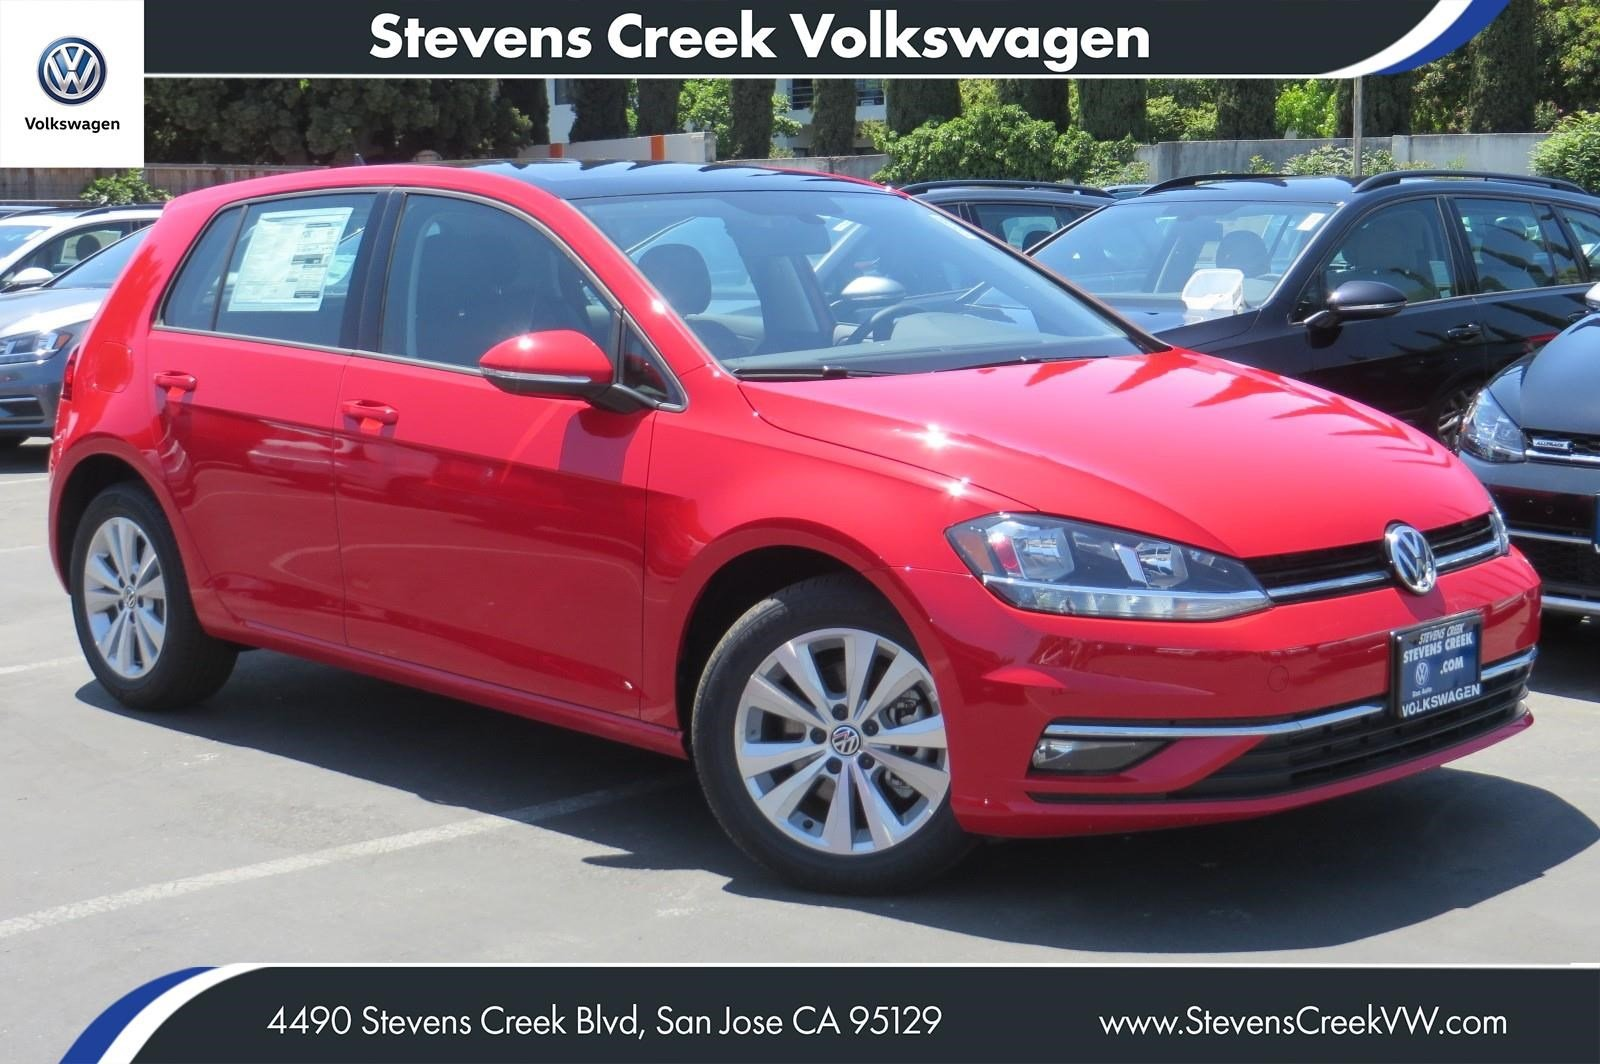 New 2018 Volkswagen Golf SE FWD Hatchback VIN JM251705 MSRP $26,025